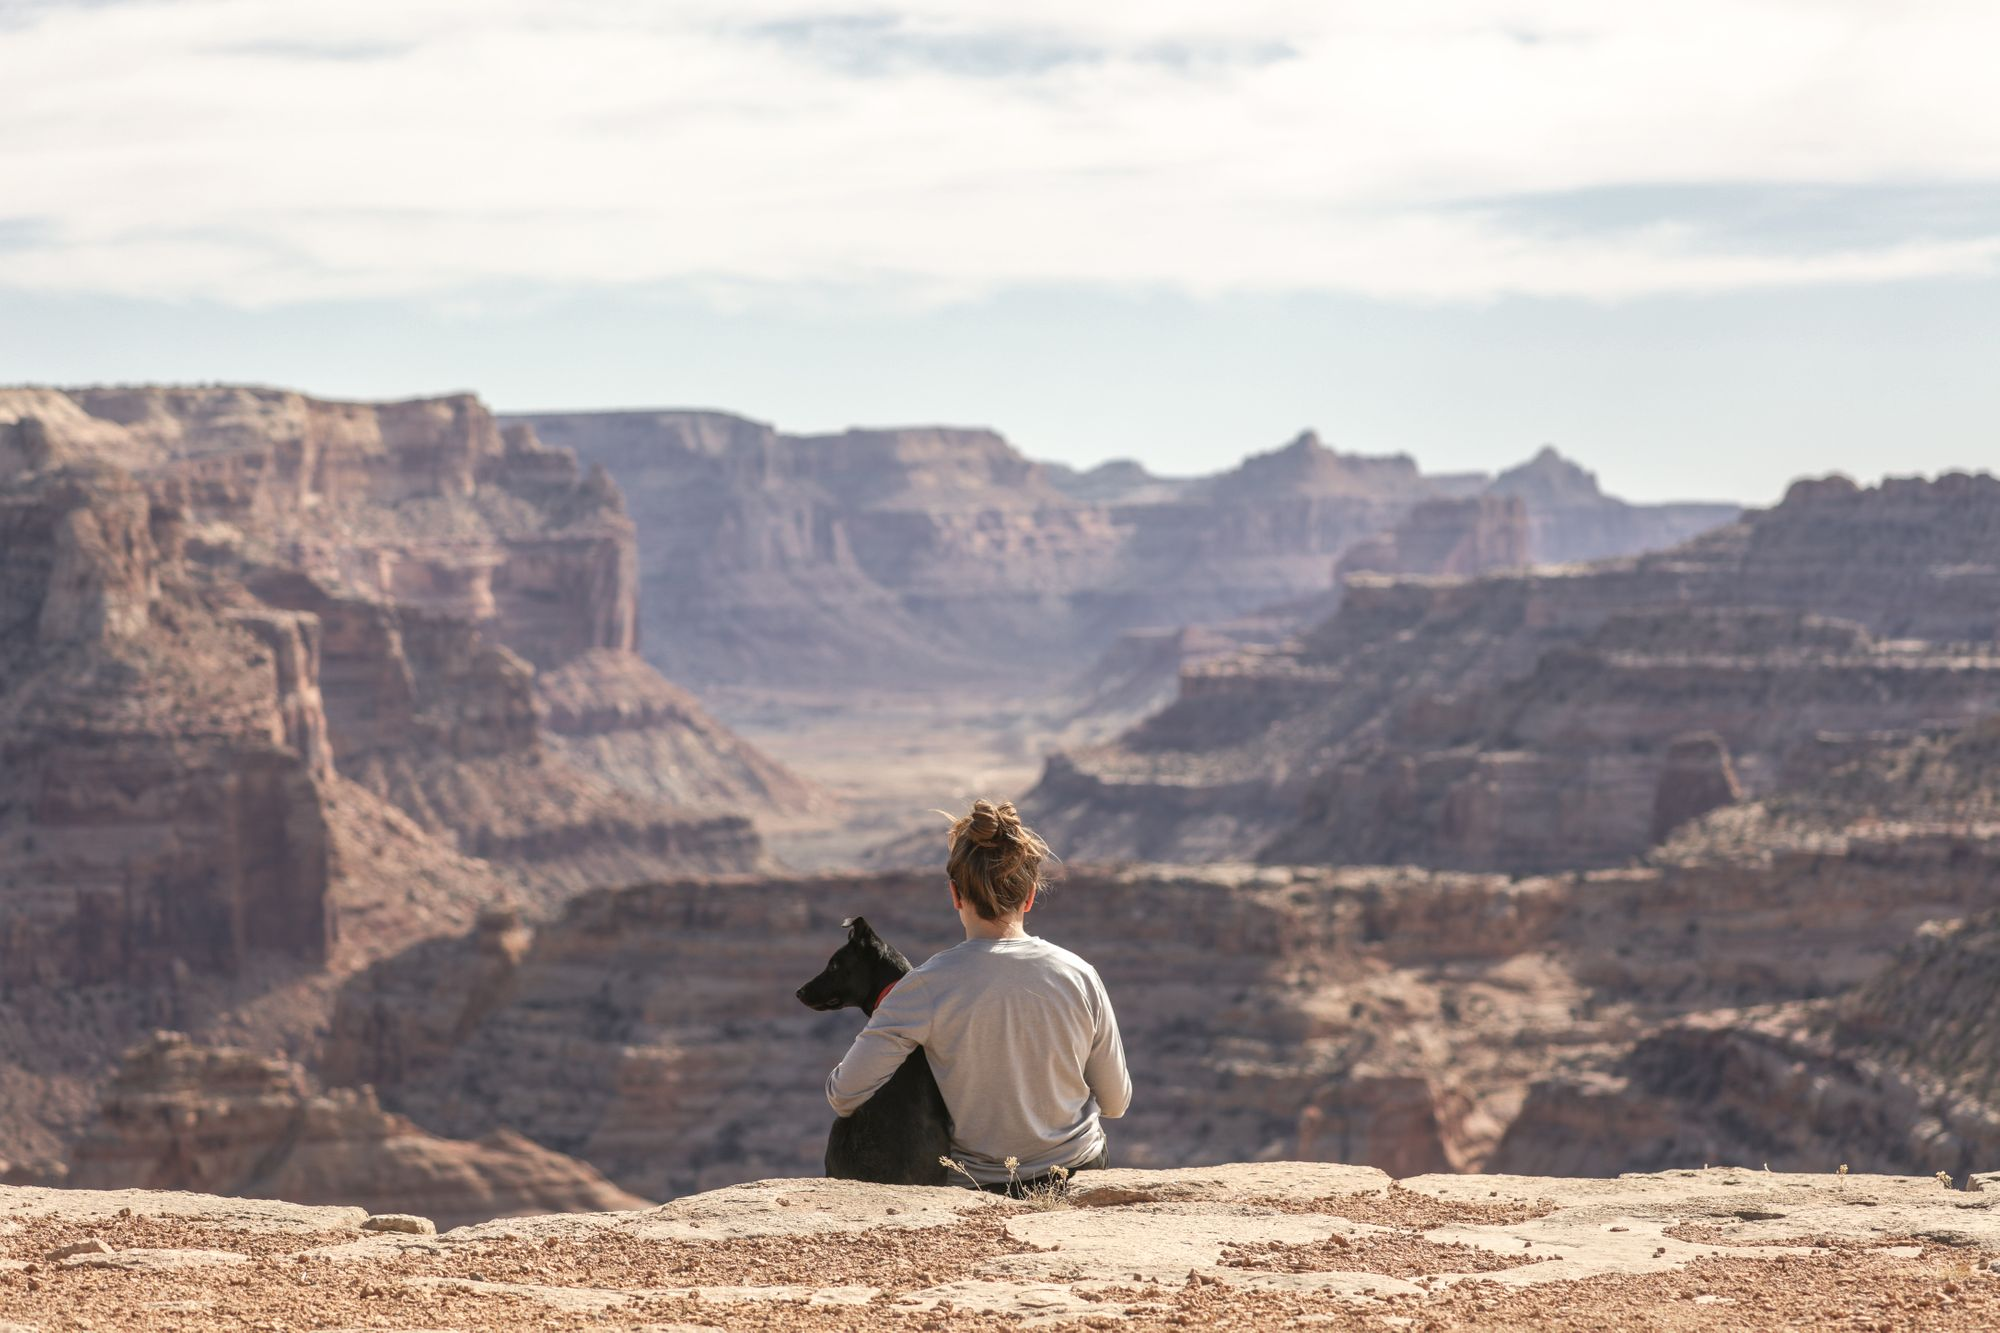 woman-with-dog-ad-the-edge-of-a-canyon-in-utah